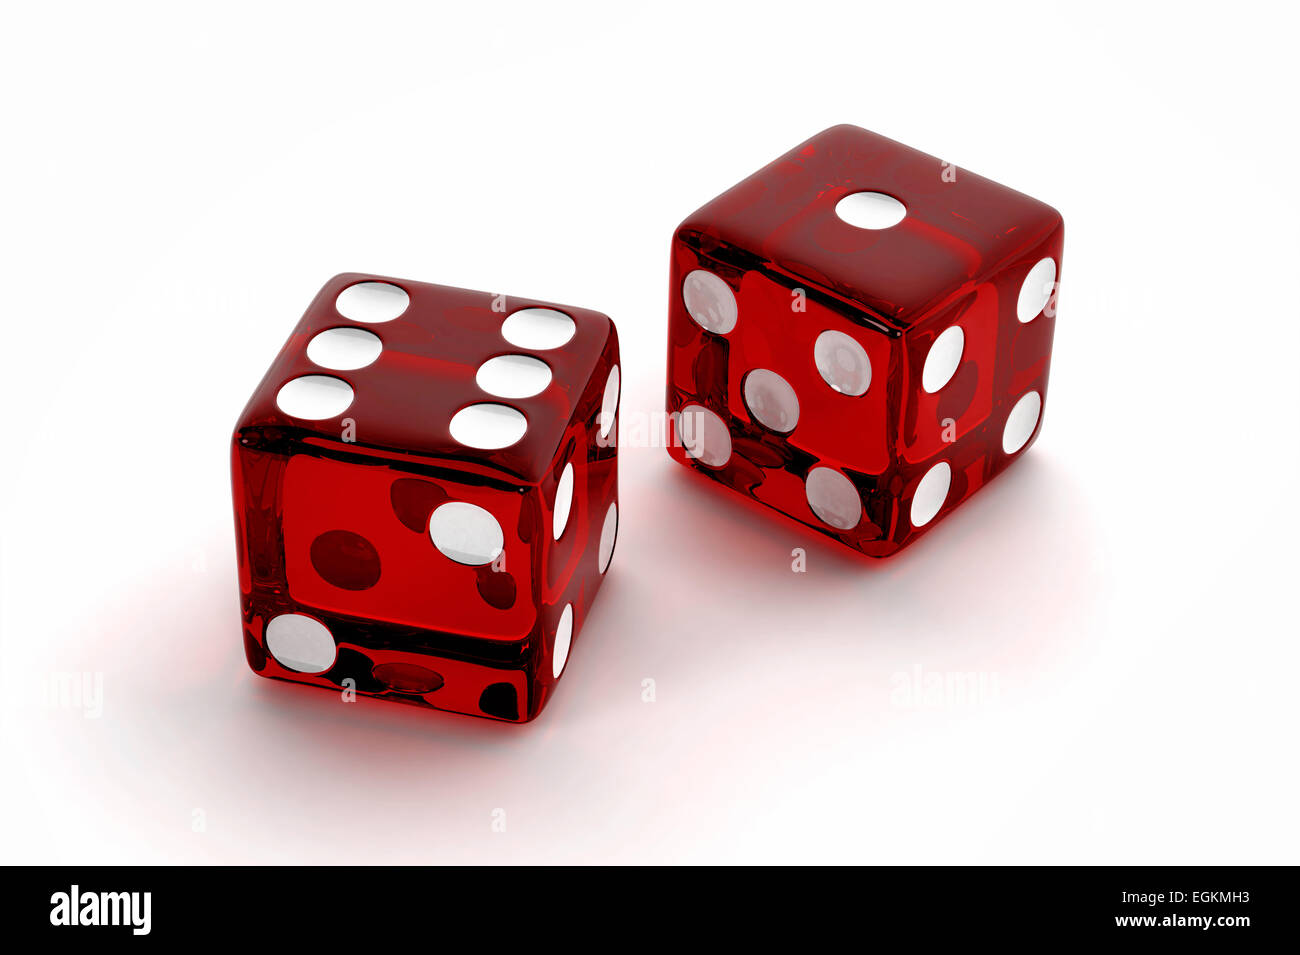 Two red semi transparent craps dice - Stock Image